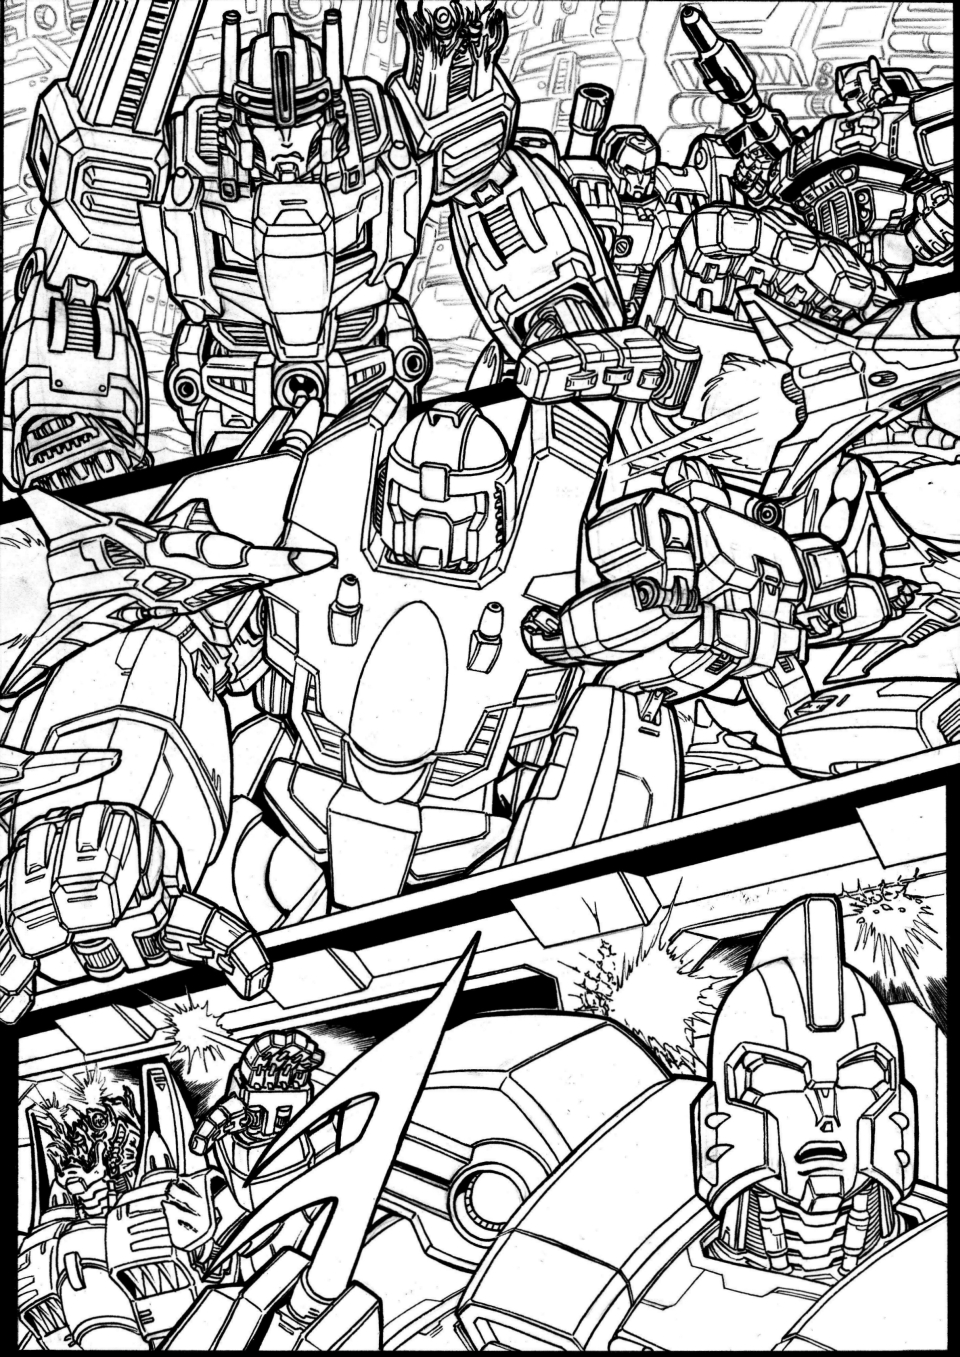 Wrath Of the Ages 6 - page 15 - lineart preview